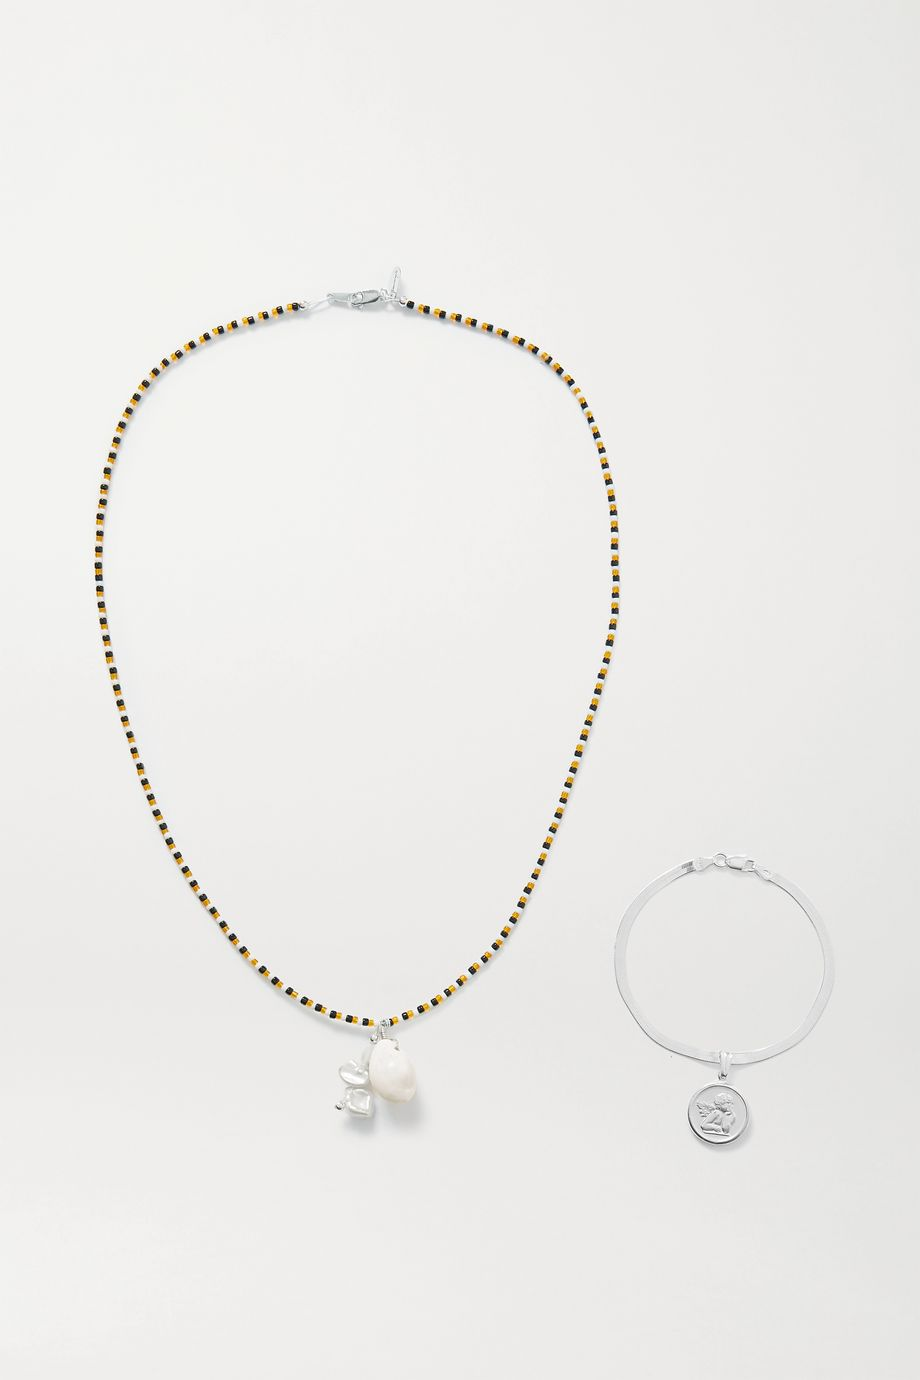 Santangelo Glory's Forever convertible silver, pearl, shell and bead body chain